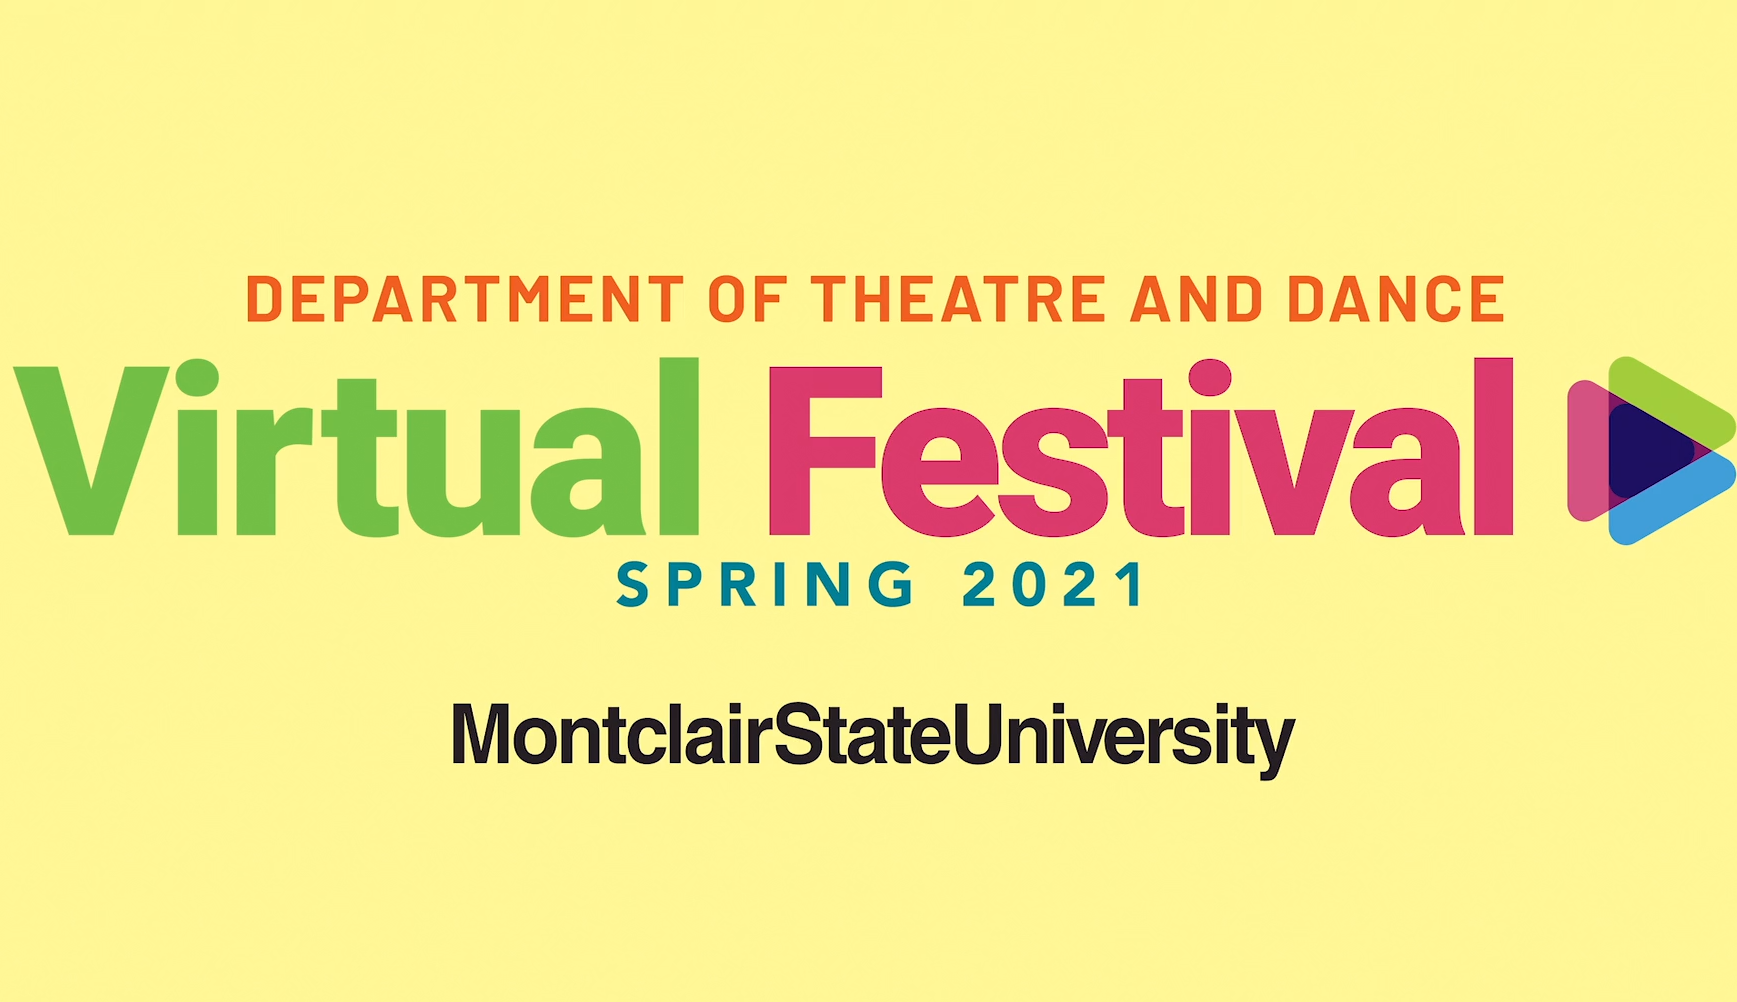 Logo of Department of Theatre and Dance's Virtual Festival Spring 2021